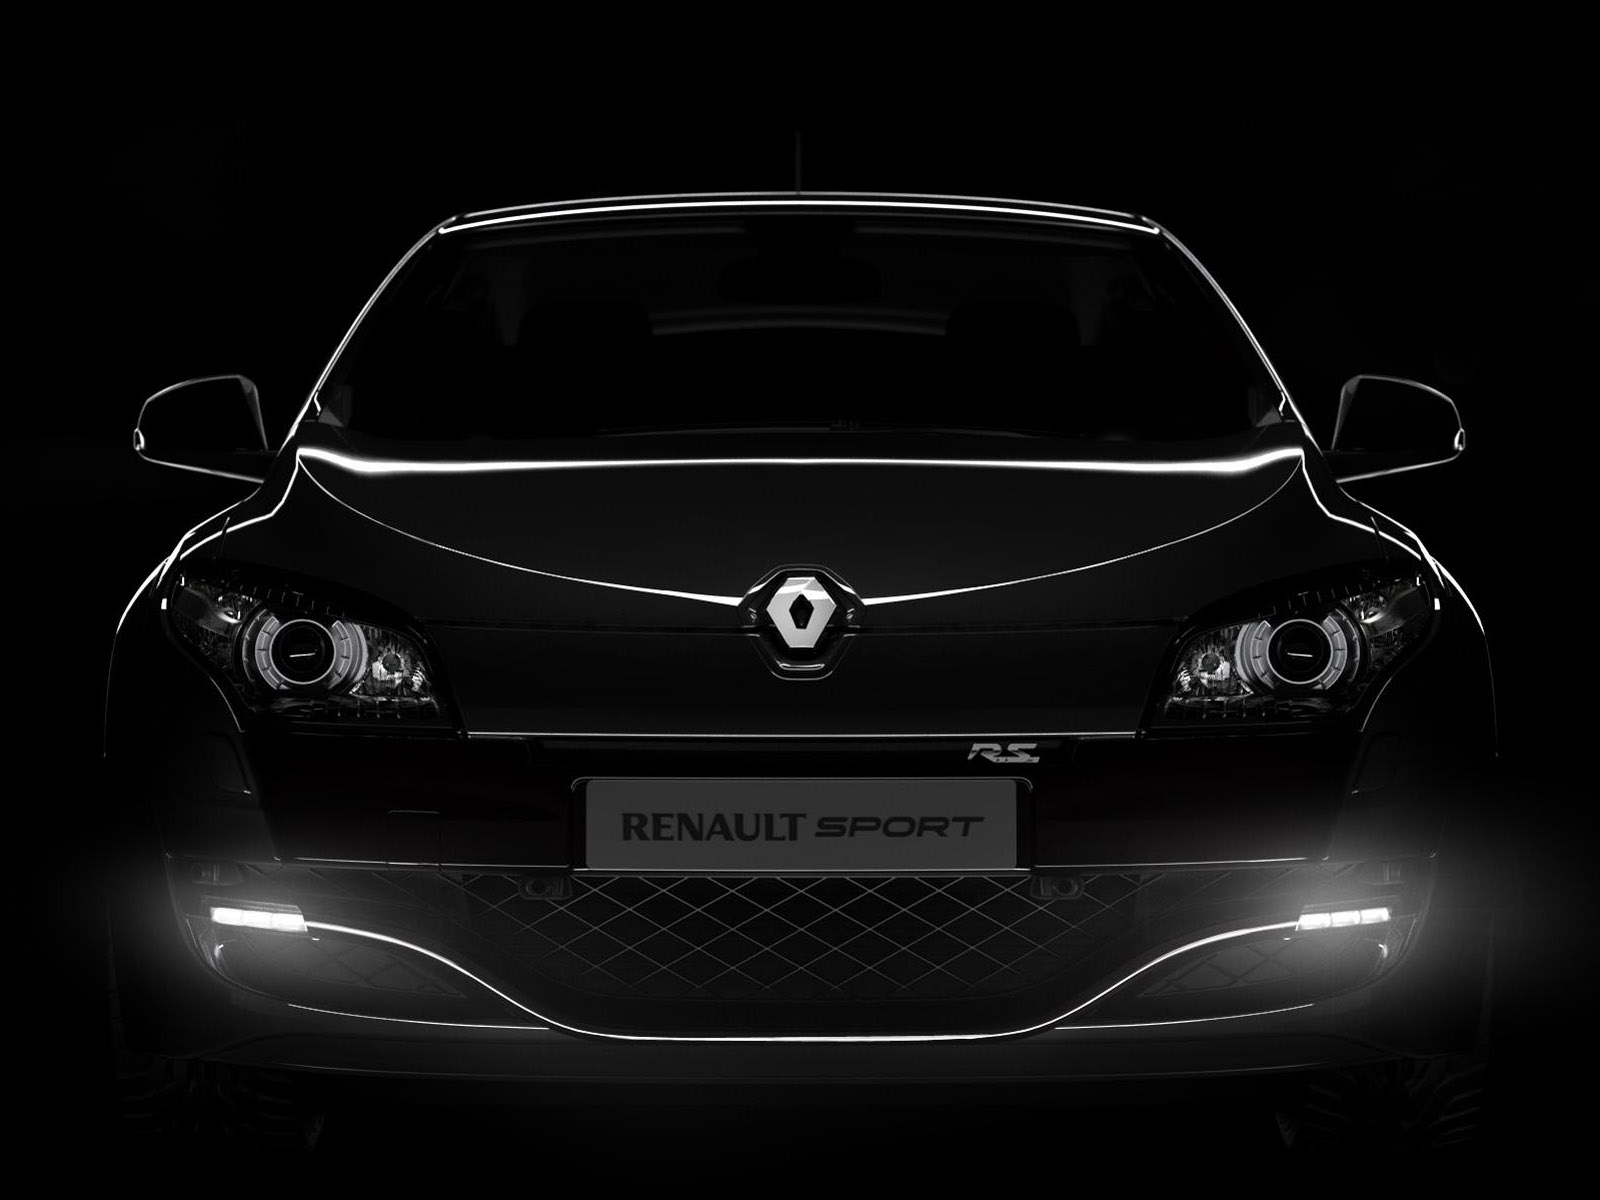 Wallpaper Love For Iphone Best Renault Sport Wallpaper Desktop Wallpaper Wallpaperlepi